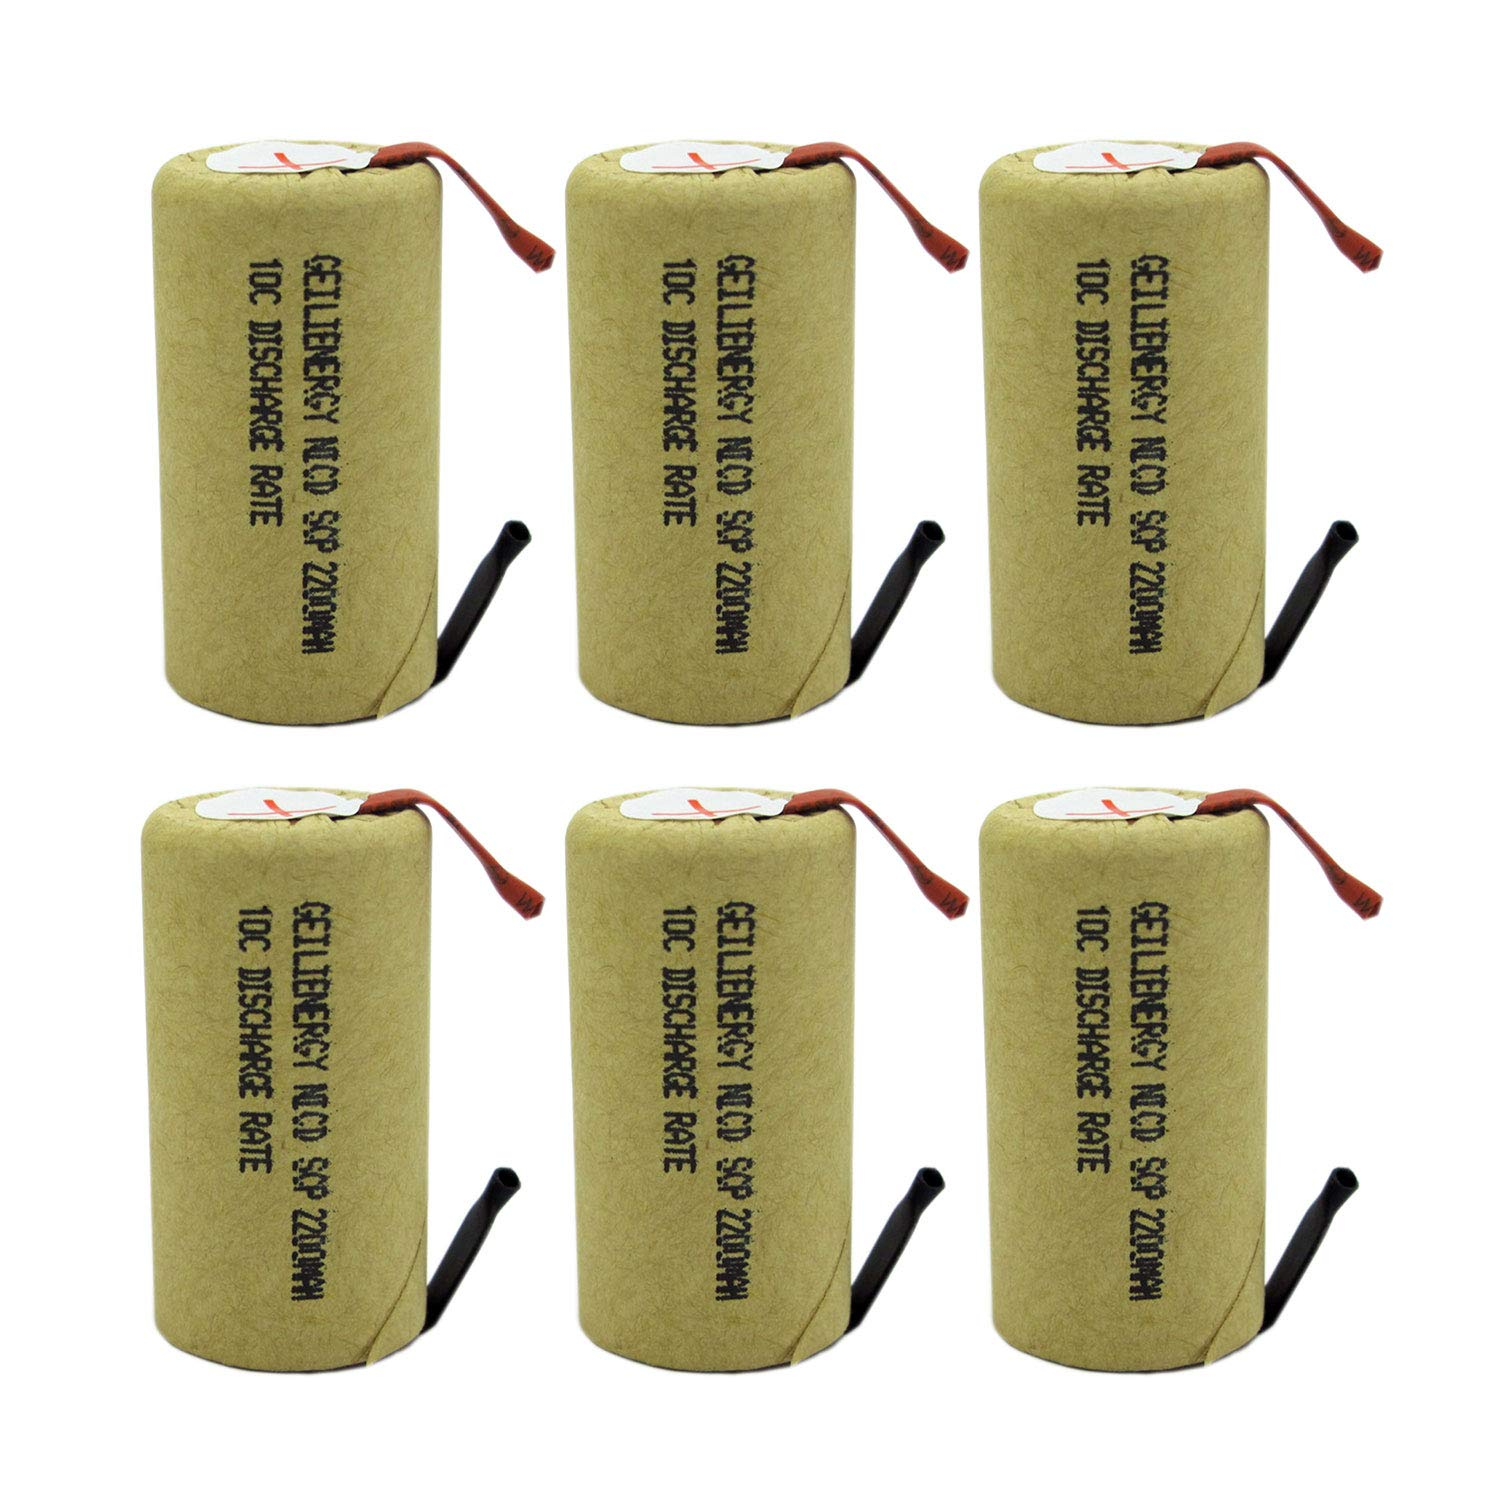 GEILIENERGY 2200mAh Sub C NiCd Battery 10C Discharge Ratefor Power Tools, 1.2V Flat Top Rechargeable Sub-C Cell Batteries with Tabs(Pack of 6) by GEILIENERGY